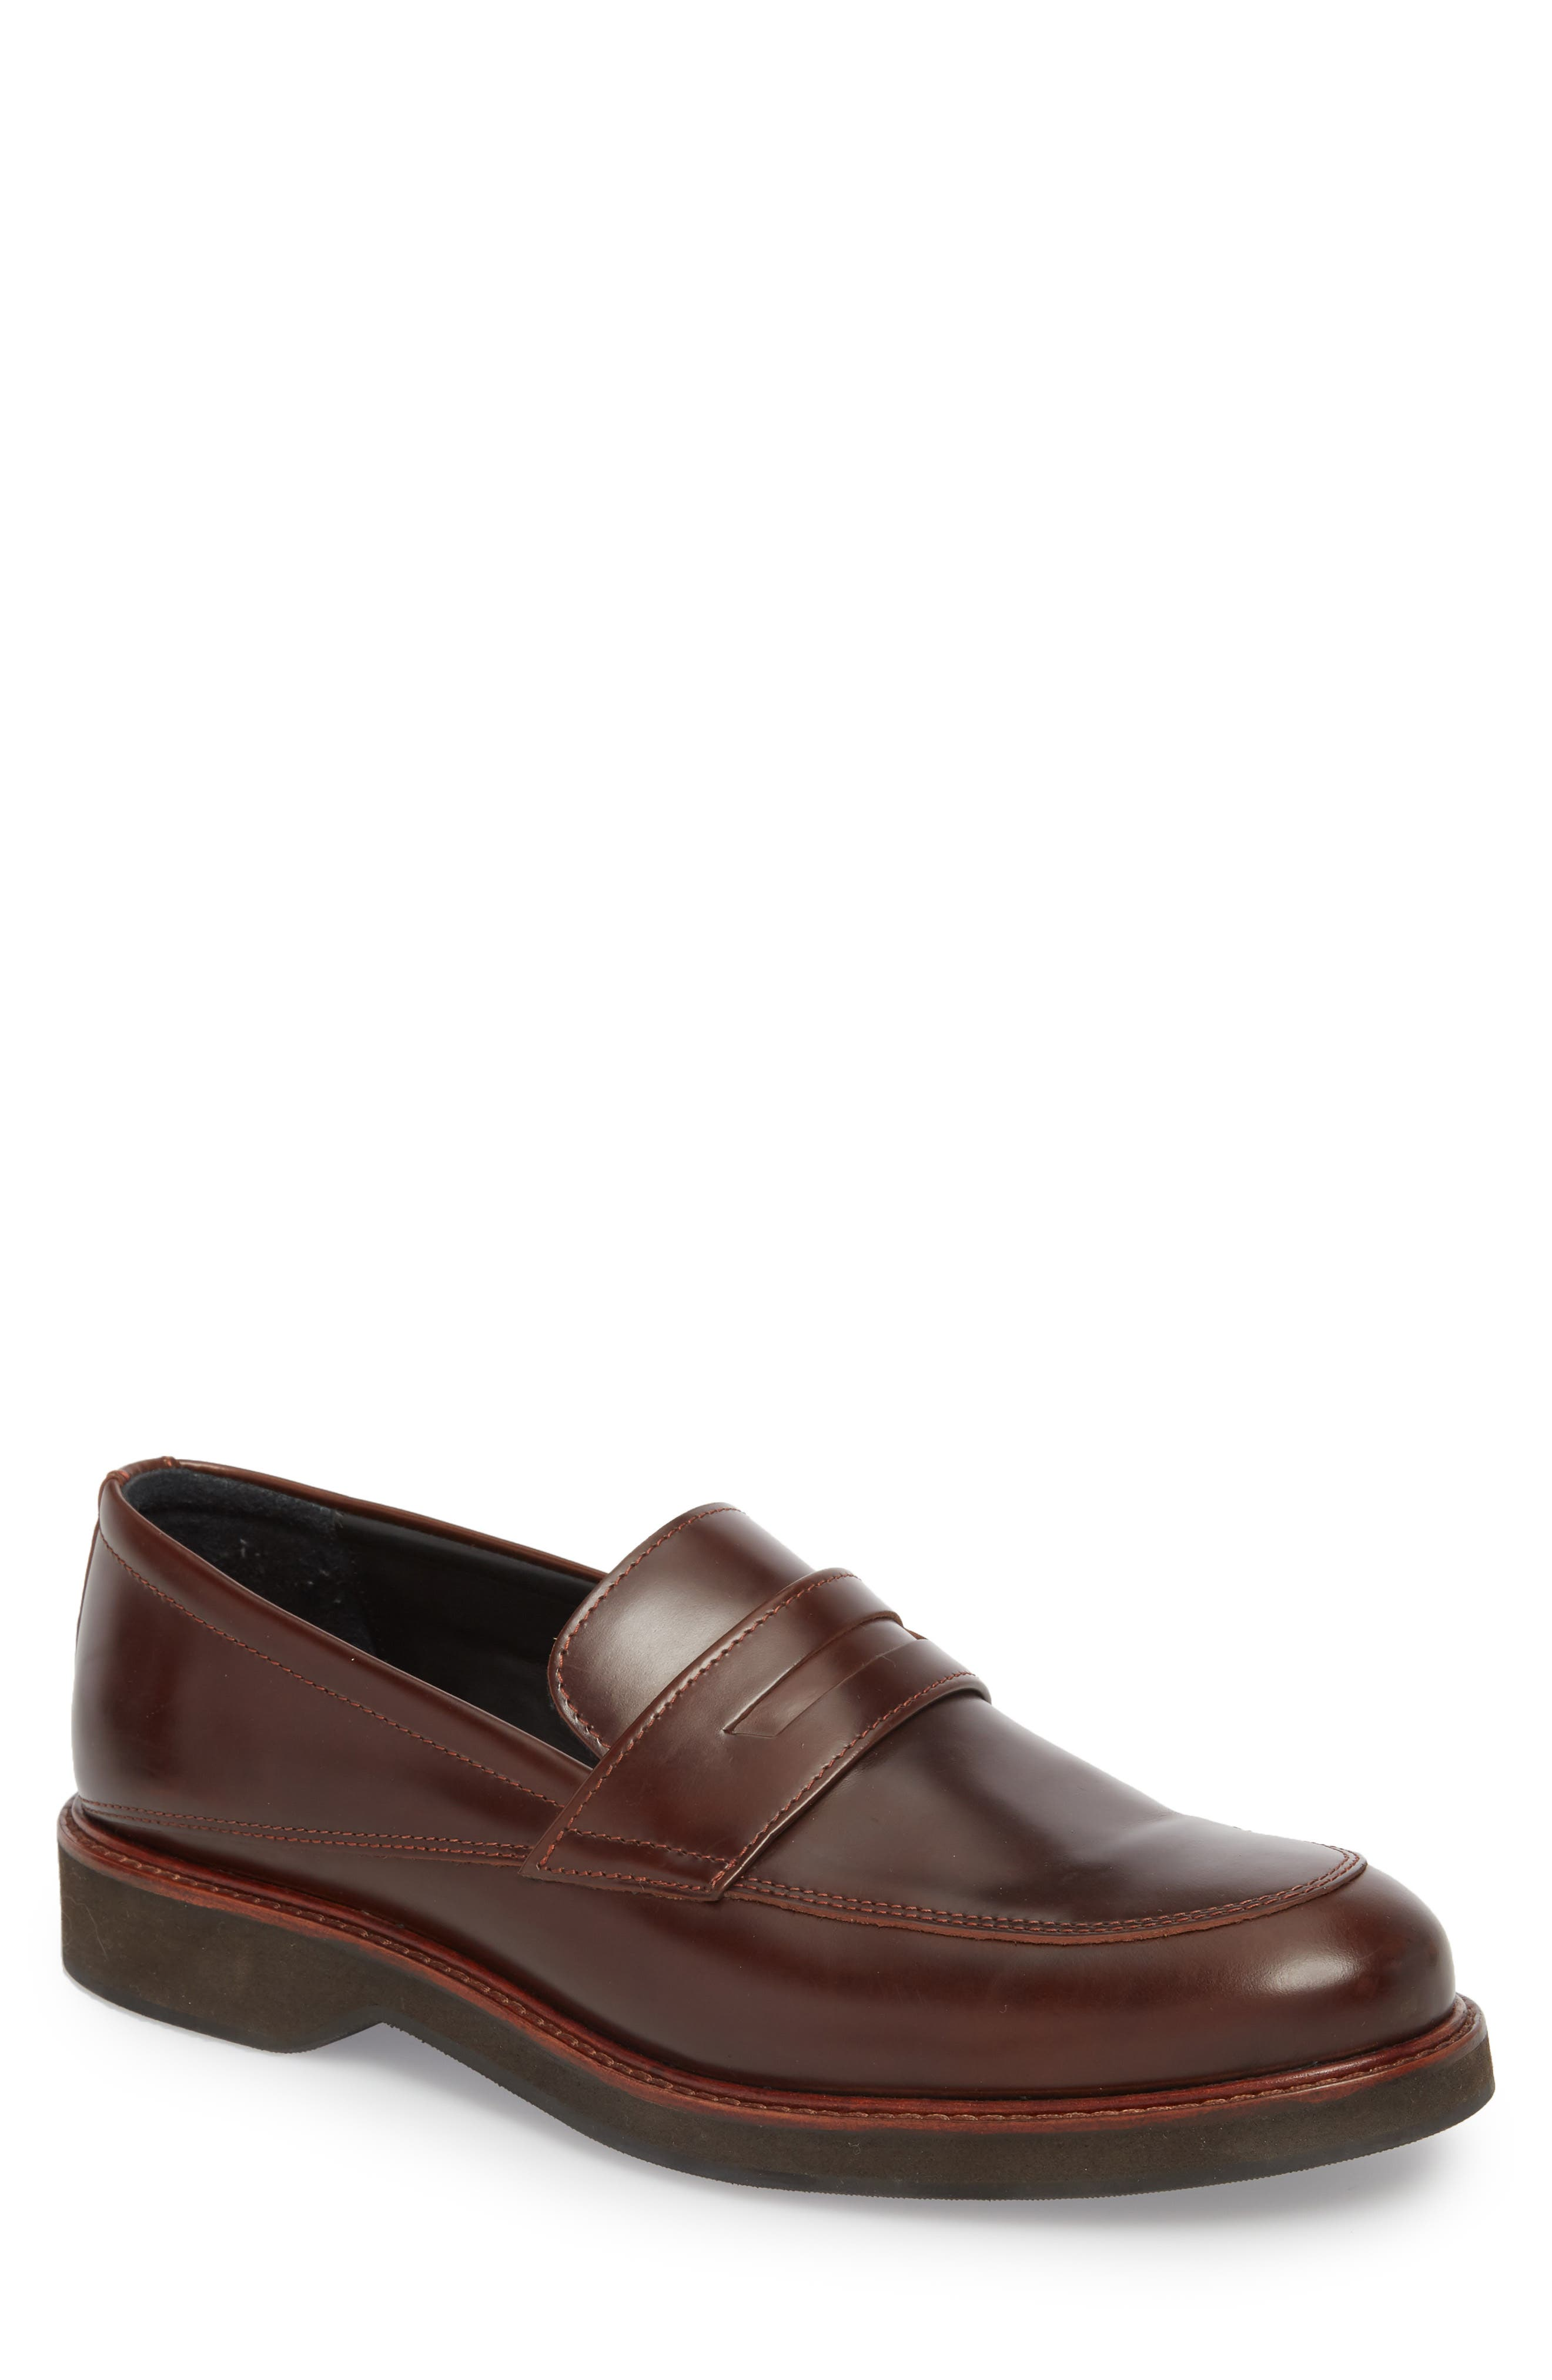 'Marcos' Loafer,                         Main,                         color, 219